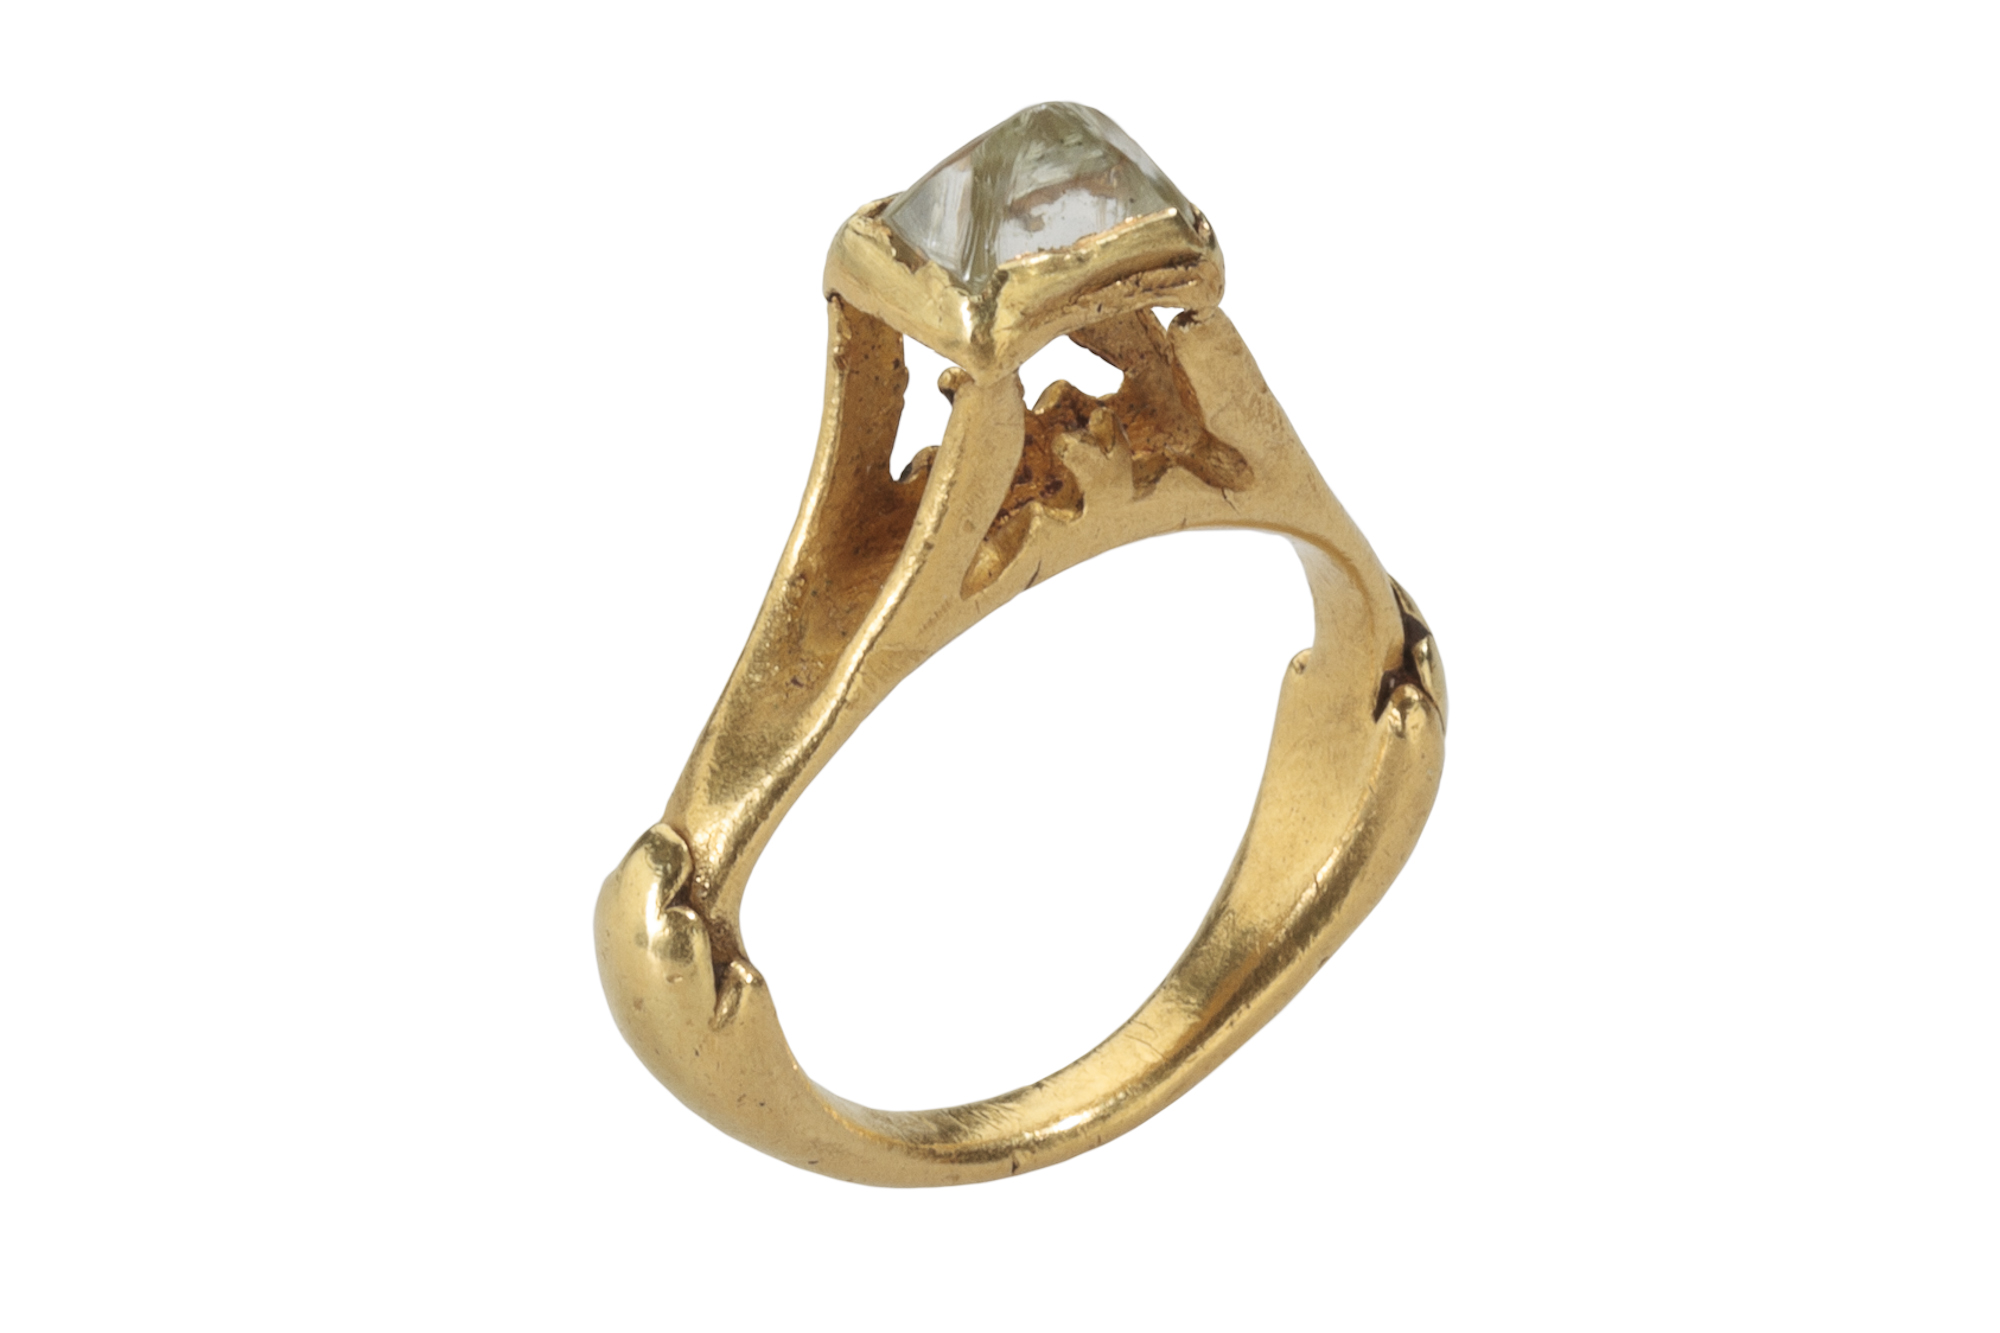 De Clercq Roman Diamond Ring Empire 3rd 4th Century